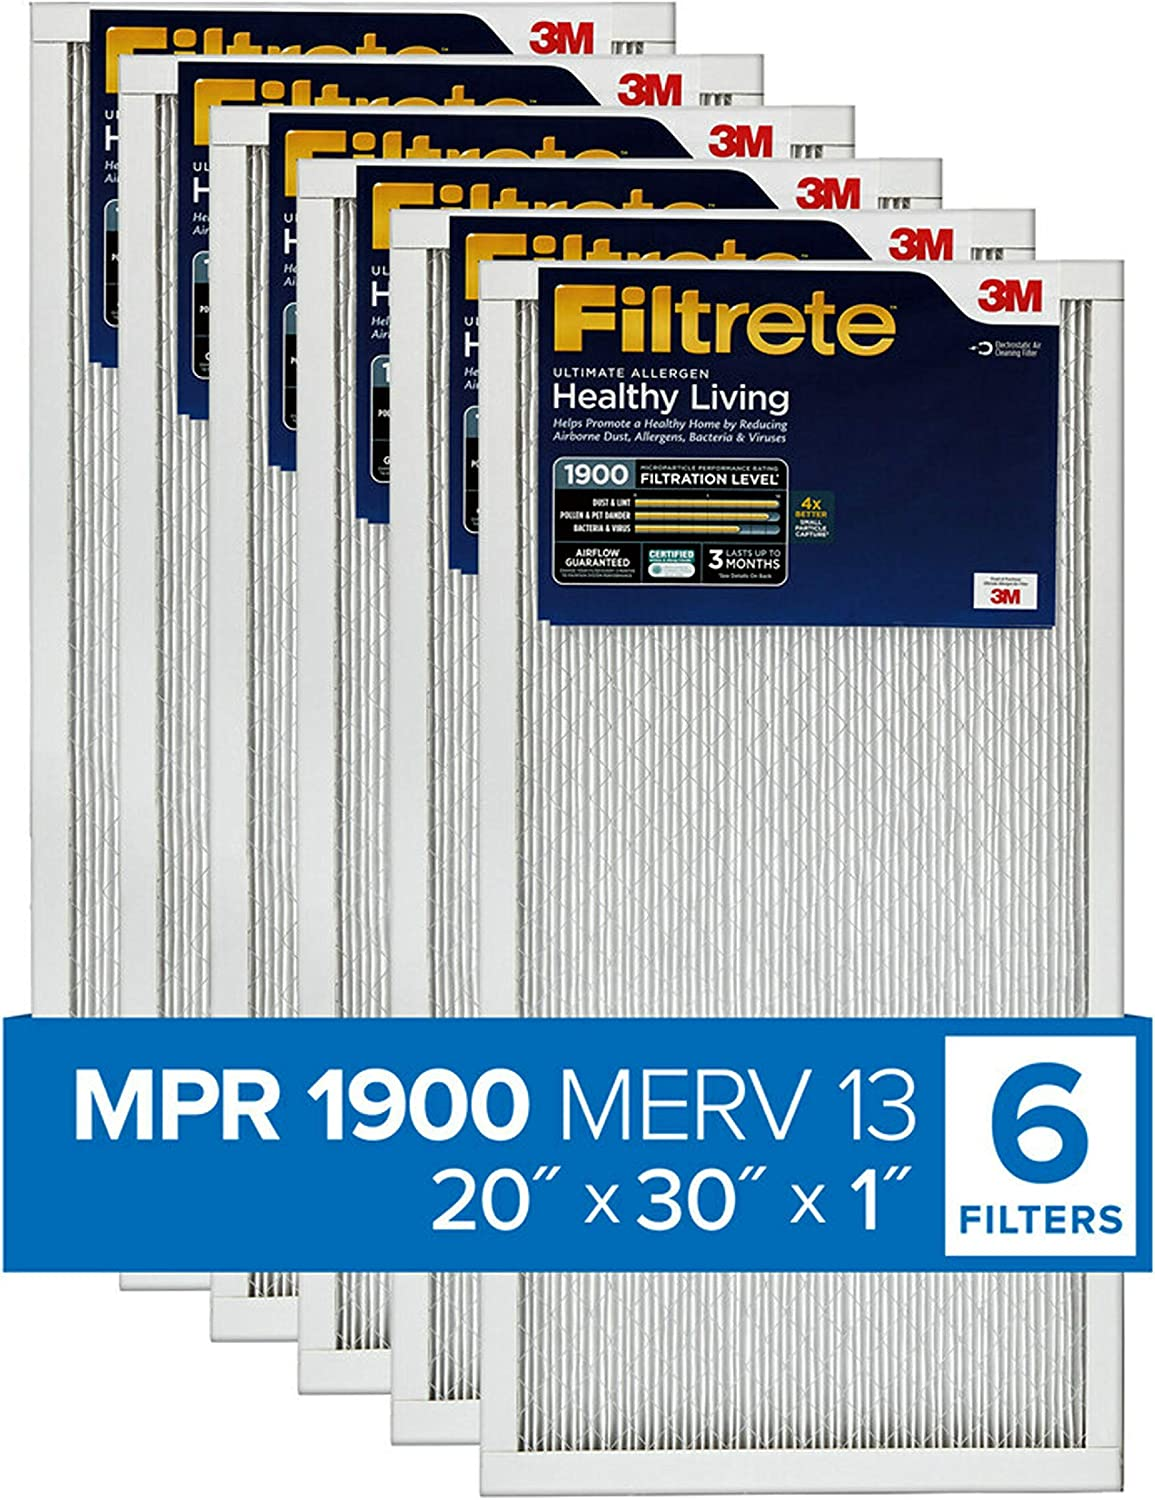 3M Filtrete 20x30x1 Dust and Pollen Air Filter 6-Pack